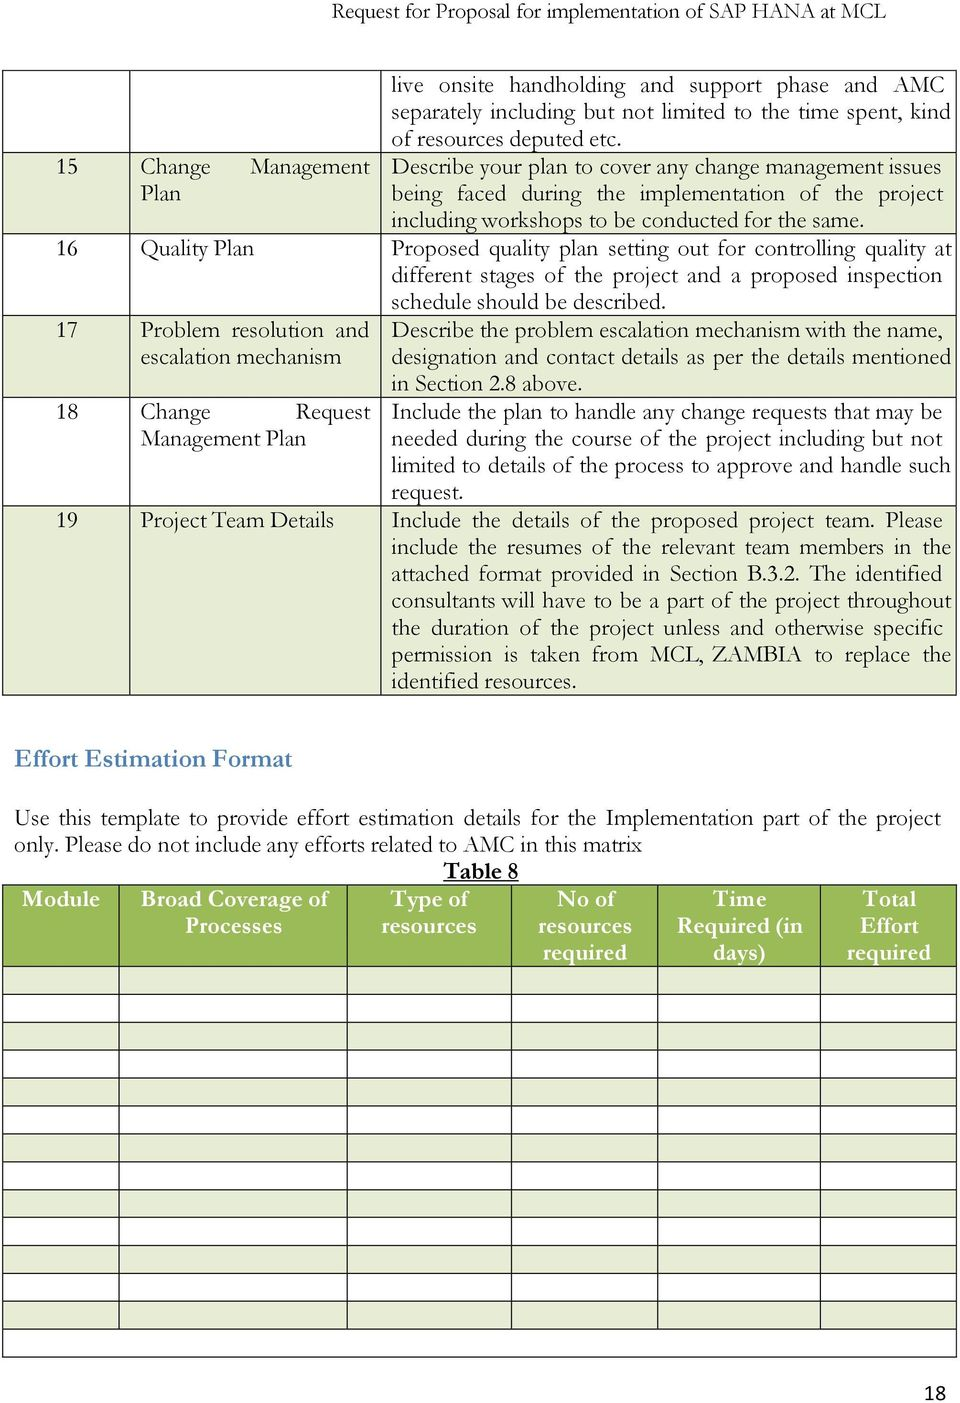 16 Quality Plan Proposed quality plan setting out for controlling quality at different stages of the project and a proposed inspection schedule should be described.